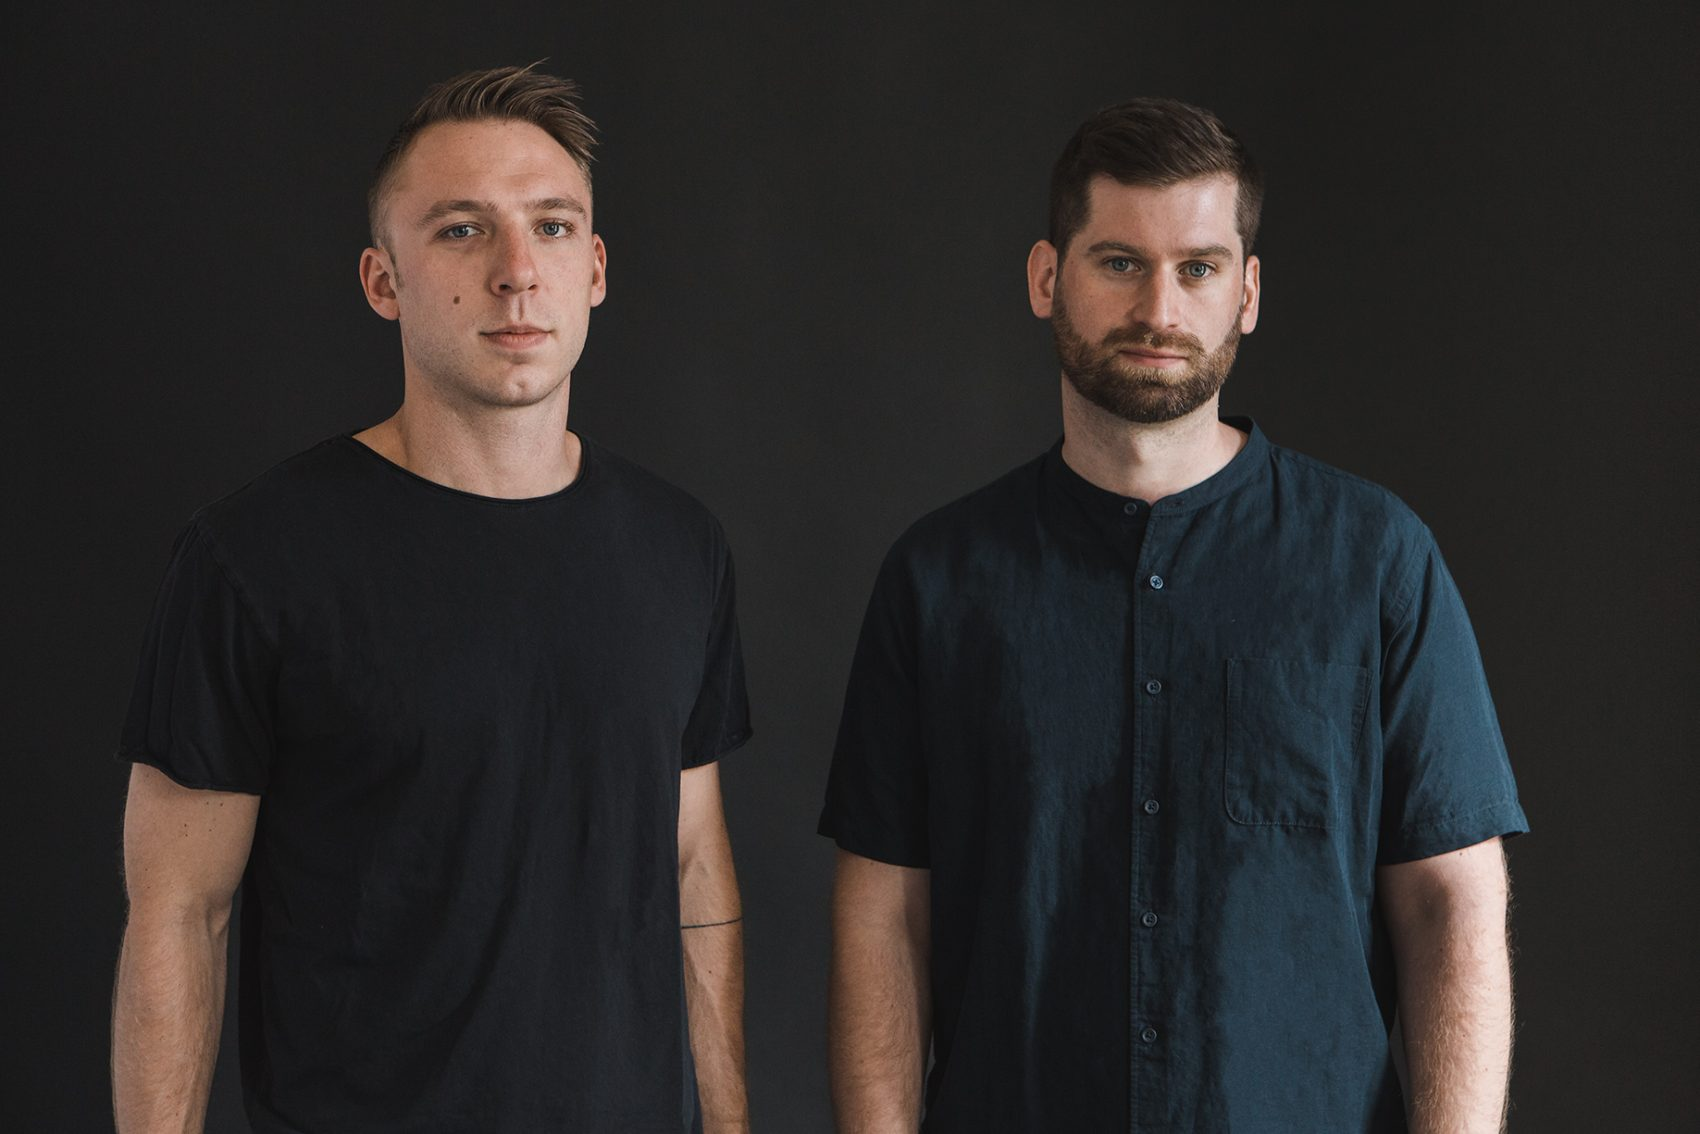 Clayton Knight (left) and Harrison Mills, of ODESZA. (Courtesy Avi Loud)